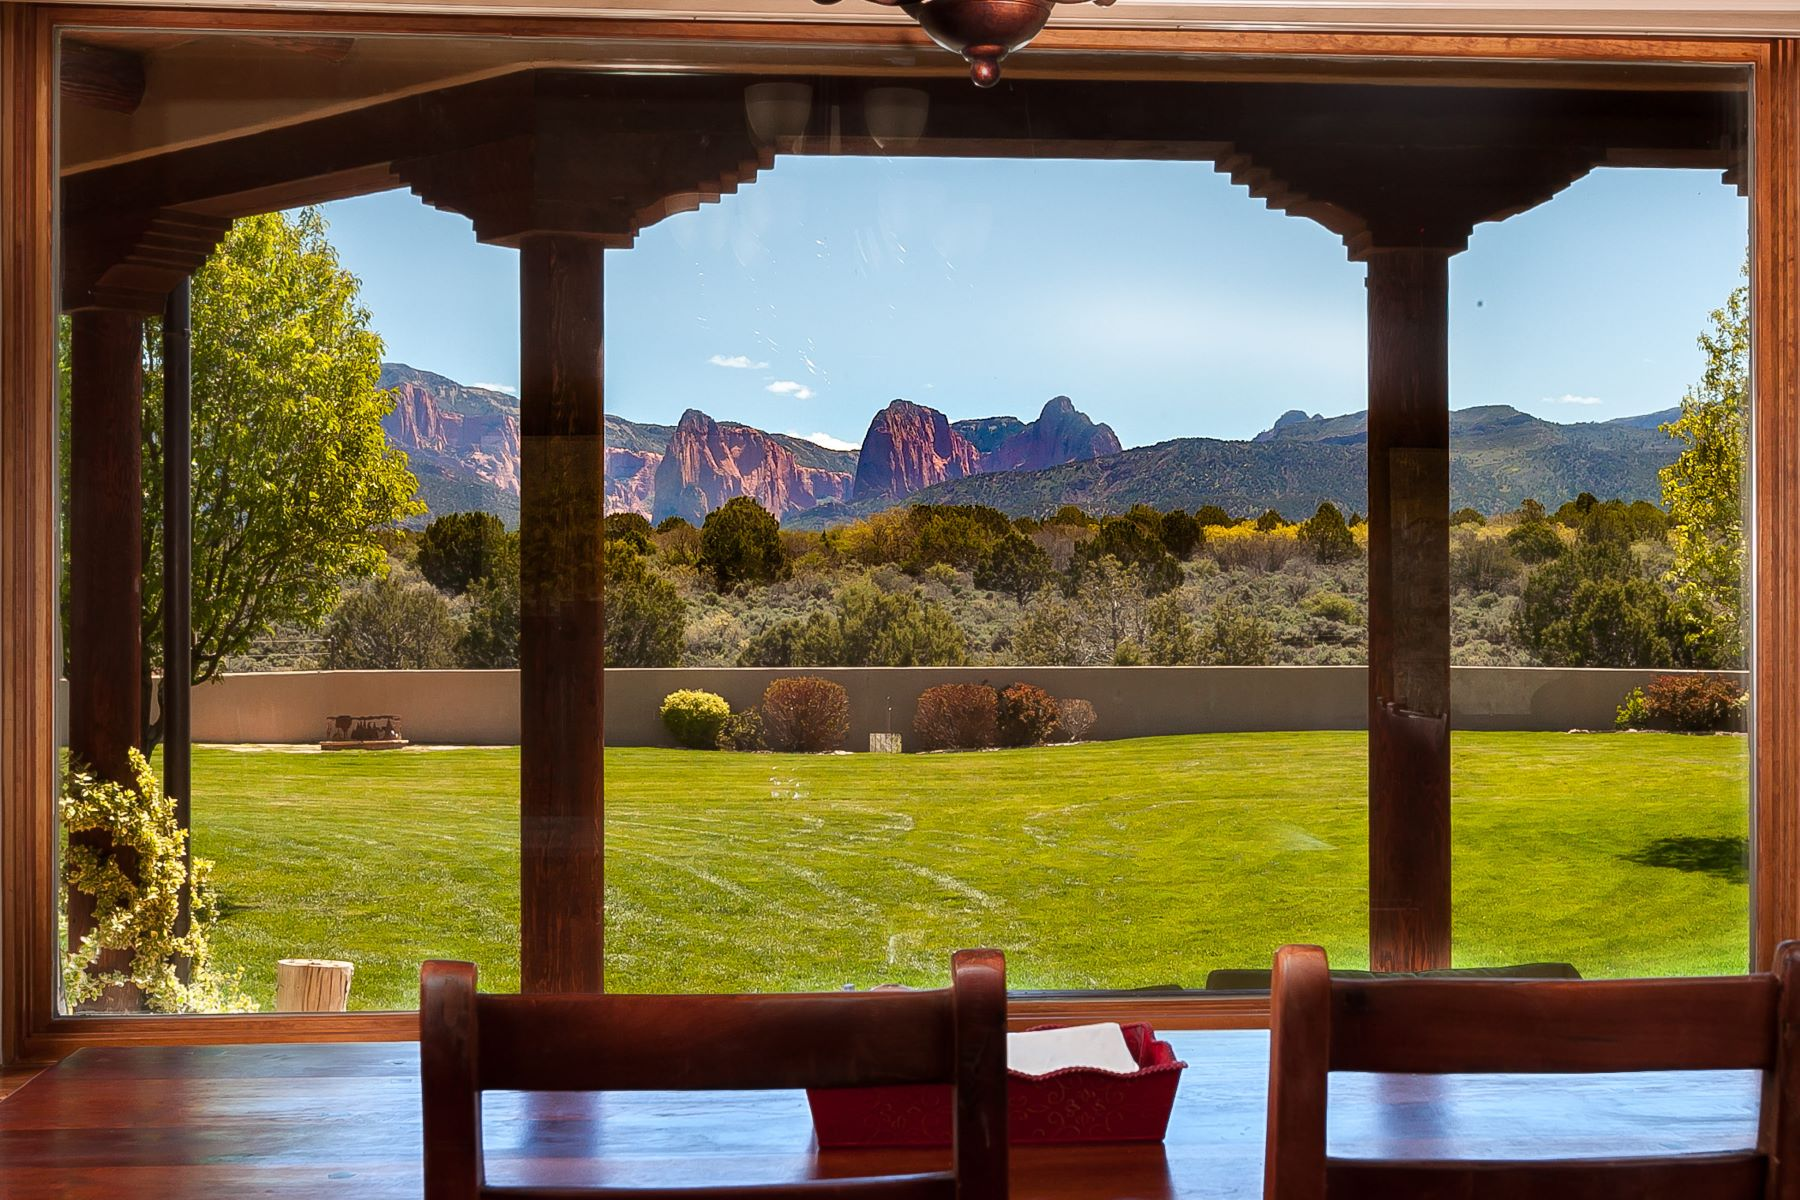 独户住宅 为 销售 在 Equestrian Paradise with Zion's Kolob Canyon Views 755 South 1500 East New Harmony, 犹他州 84757 美国